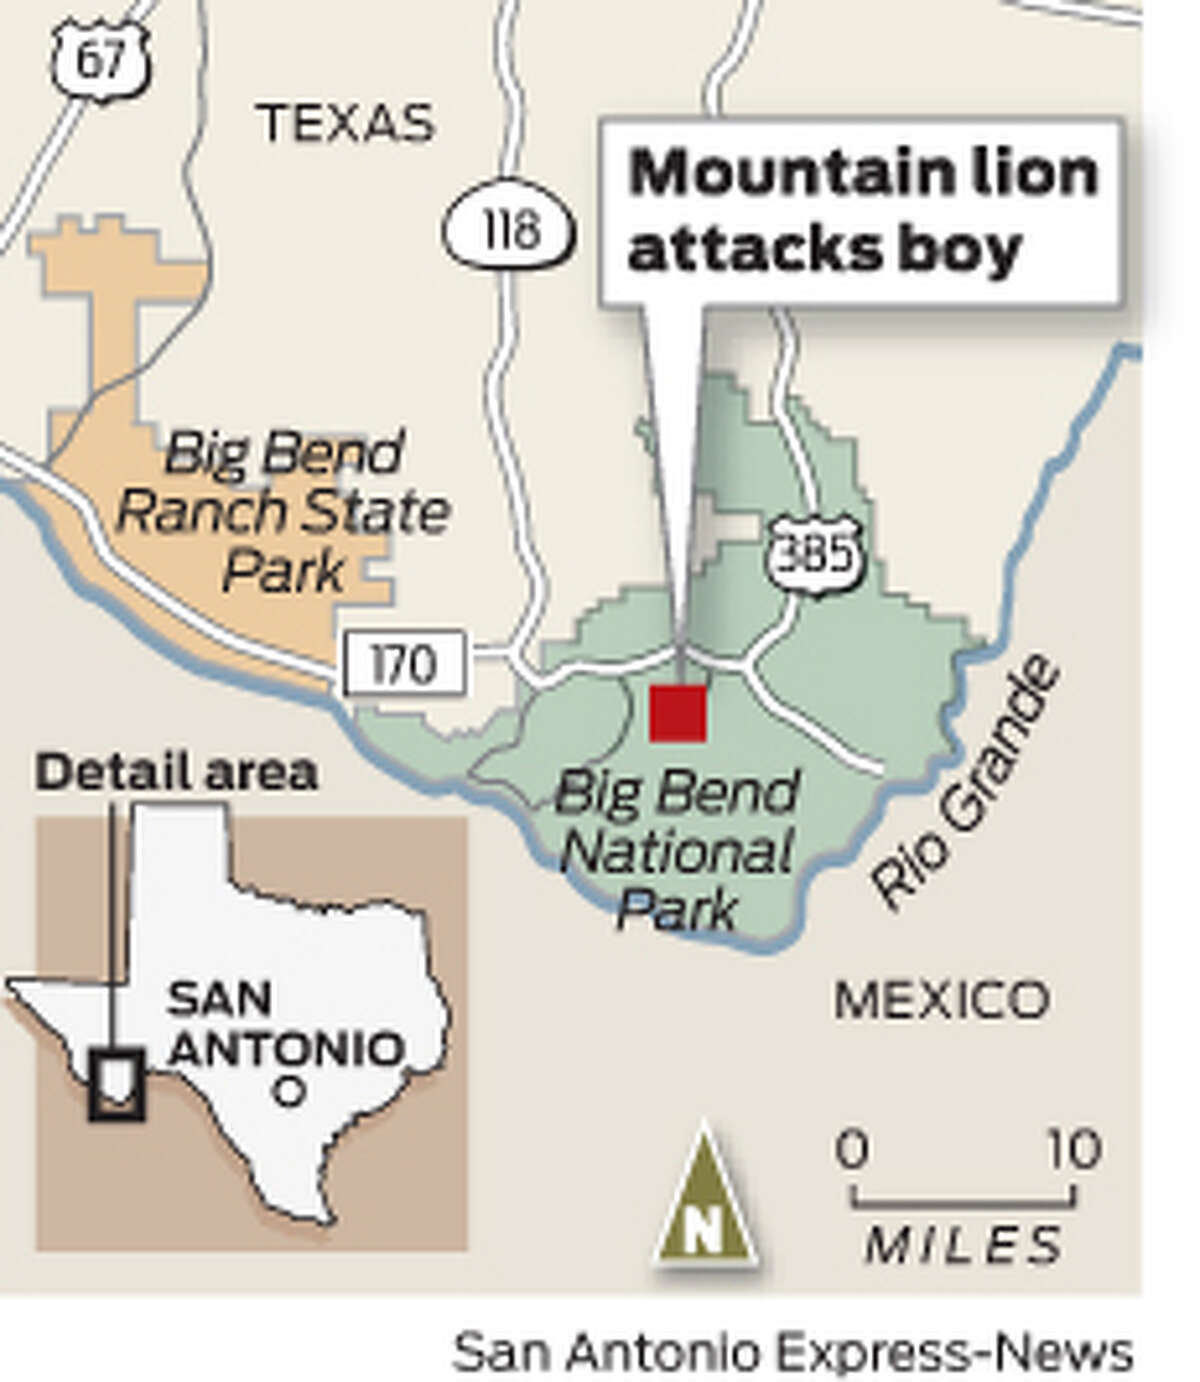 Mountain lion attacks boy in Big Bend National Park